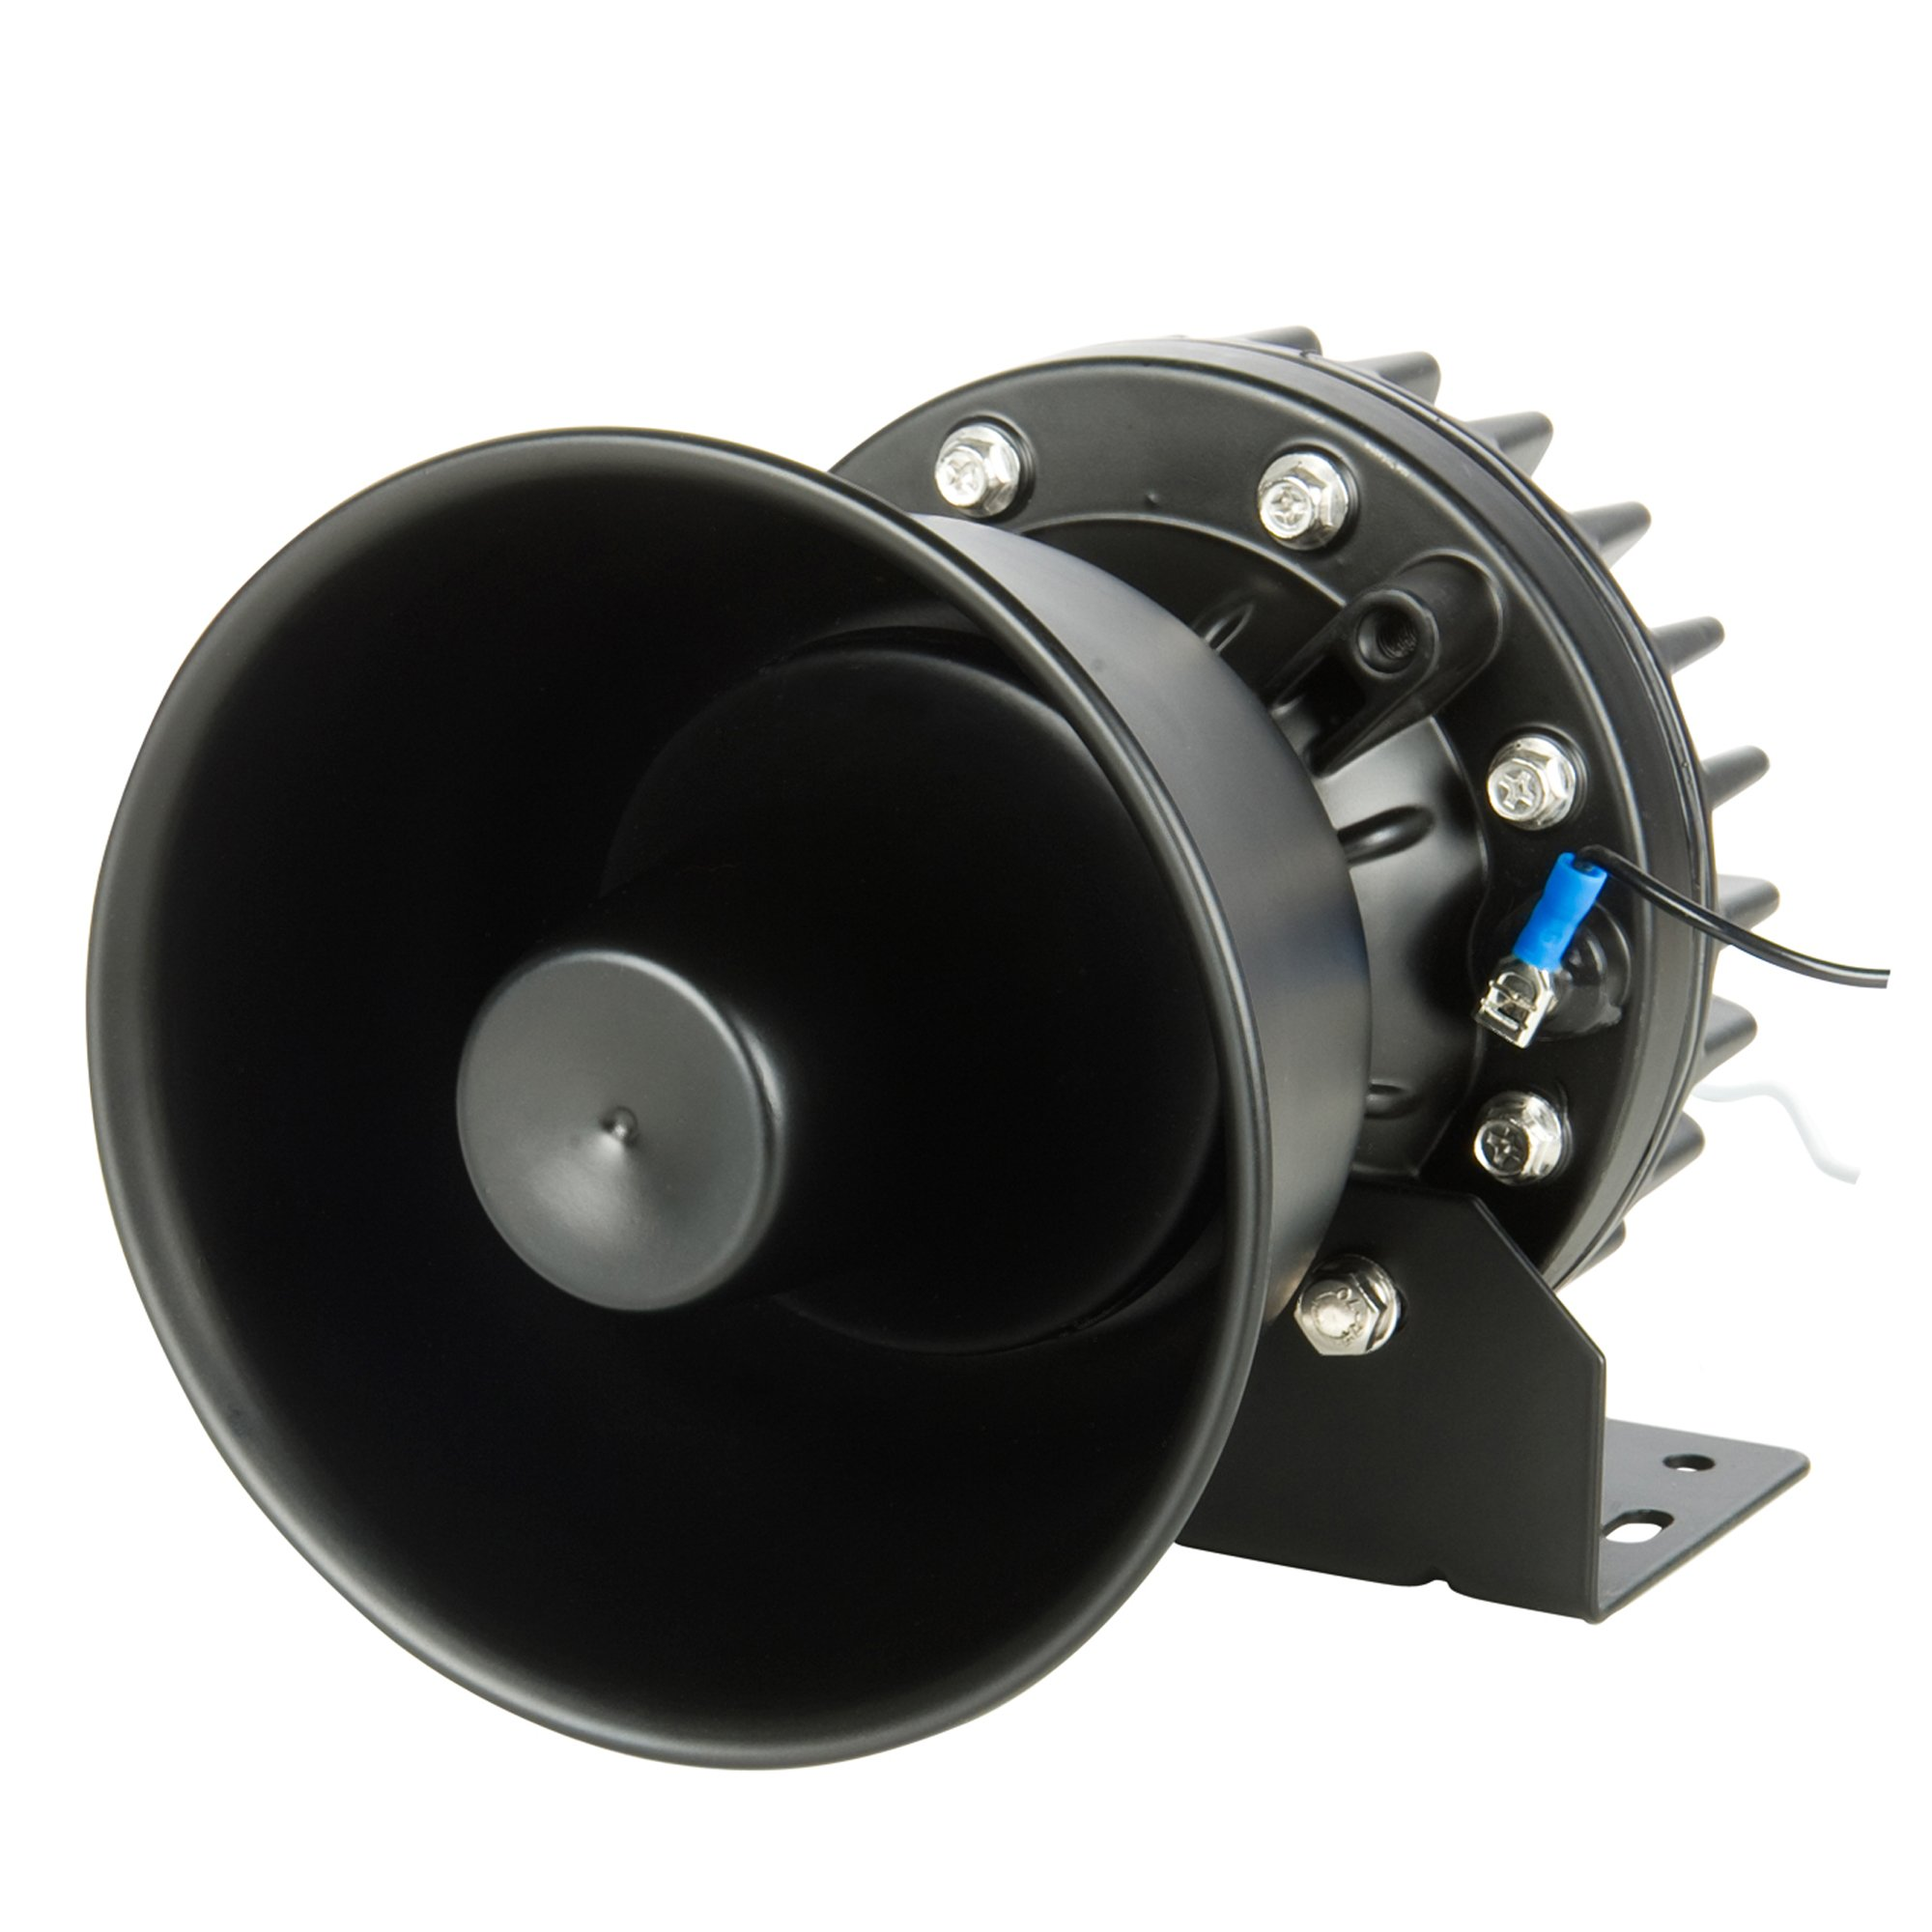 ABRAMS Supreme-200W Siren Speaker High Performance (Capable with Any 200W Siren)